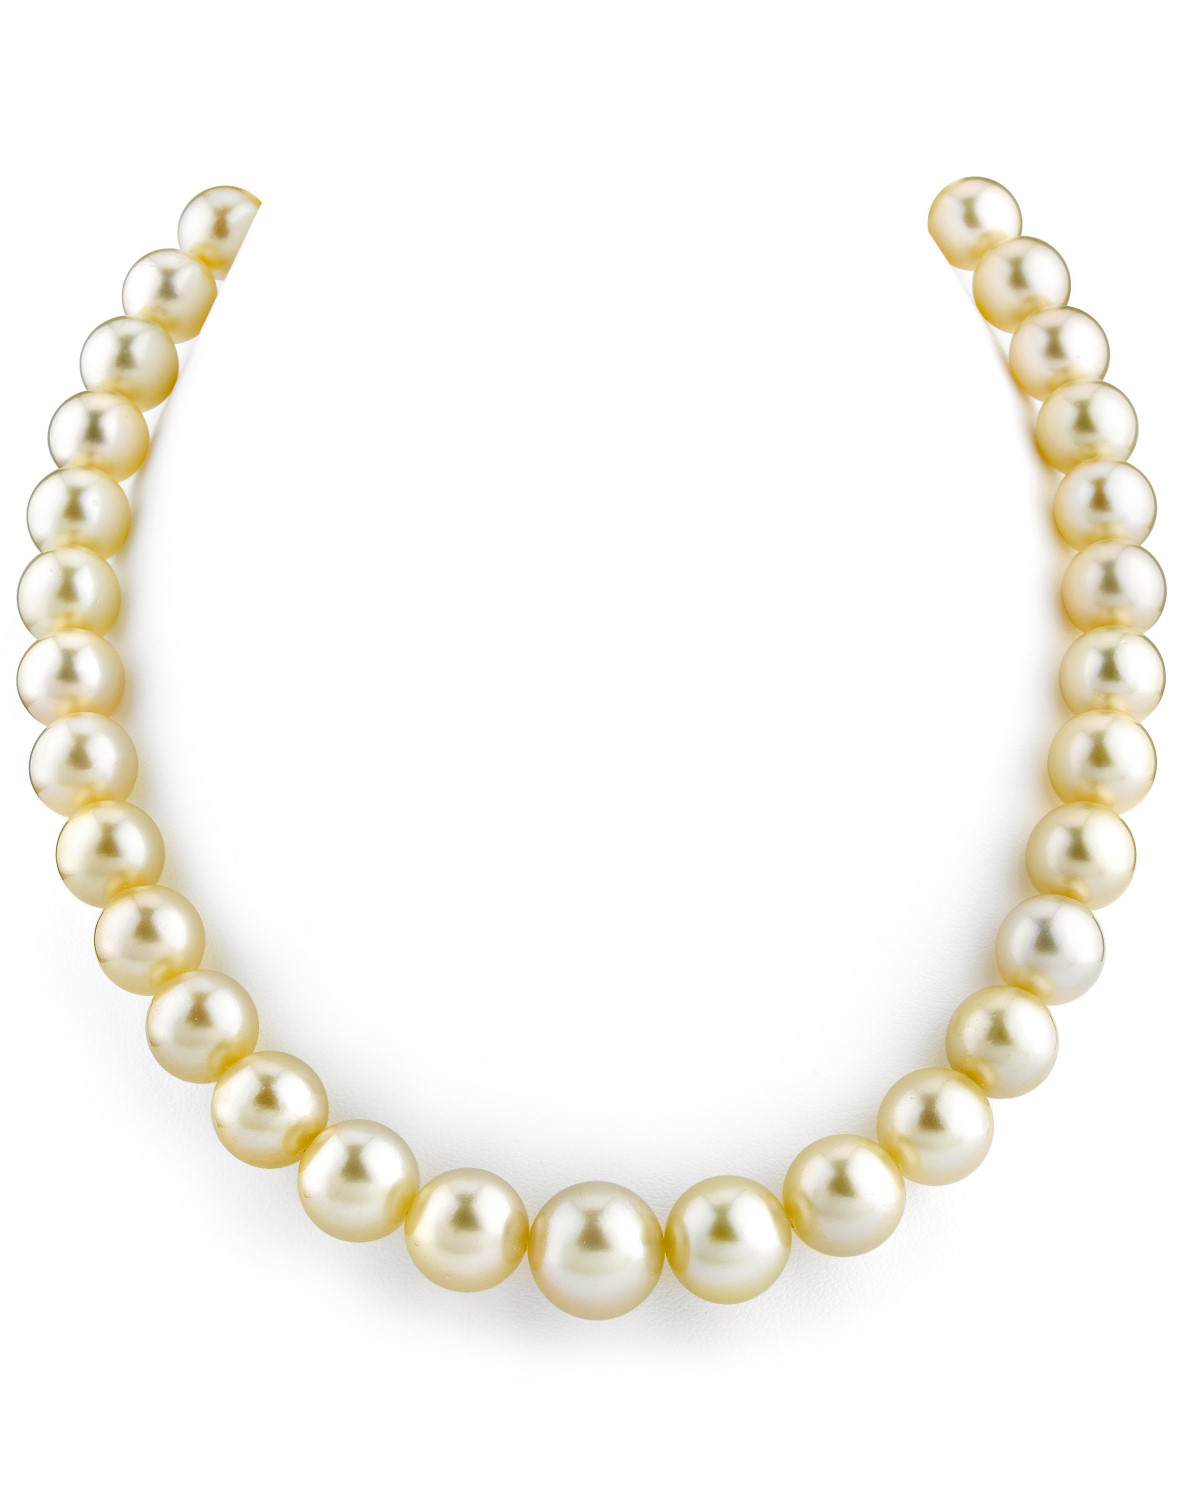 10-12mm Champagne Golden South Sea Pearl Necklace